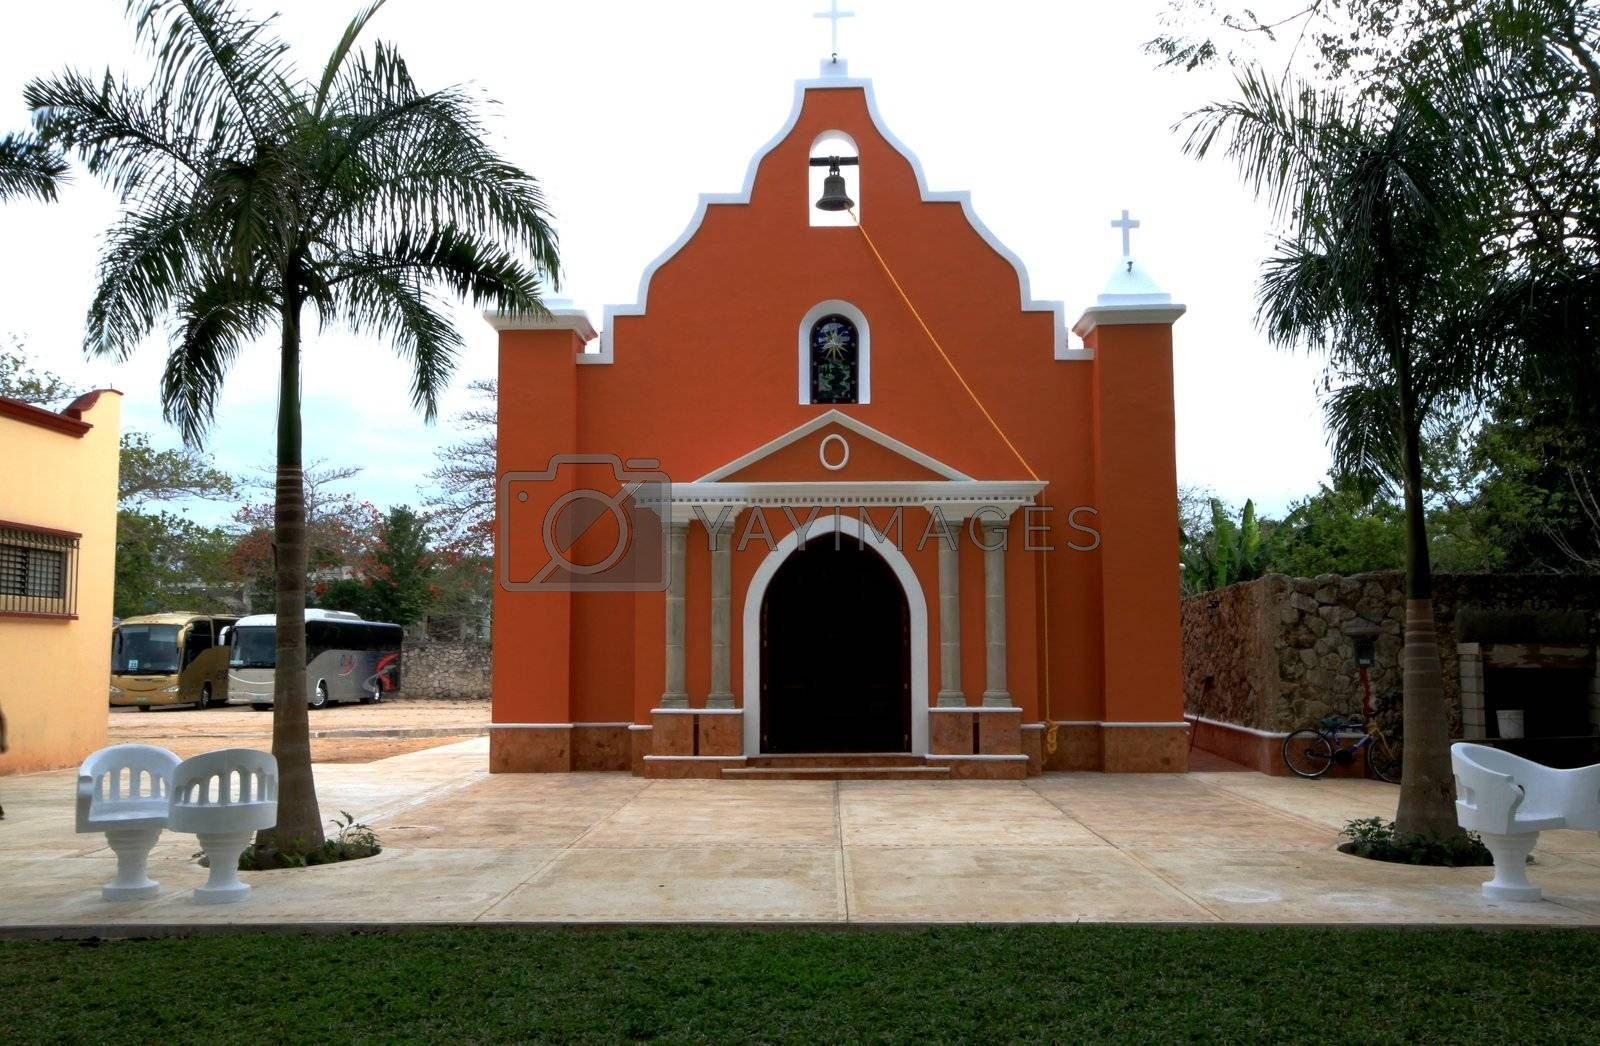 Memorial church built for Mayans in Mexico